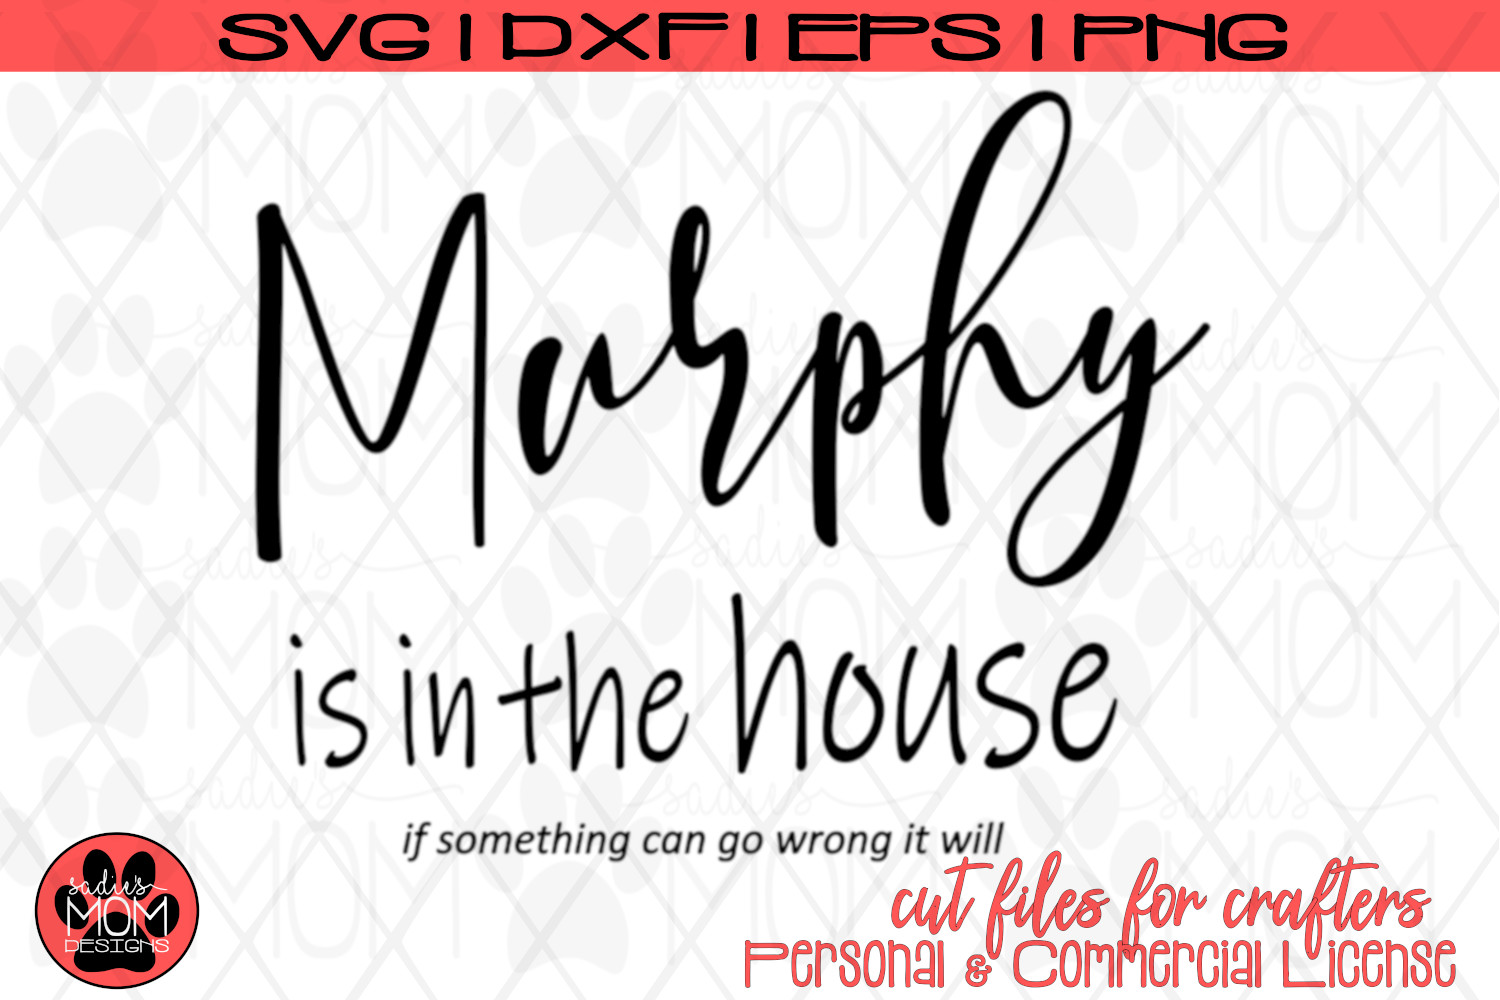 Murphy's Law - If it can go wrong, it will | SVG Cut File example image 2